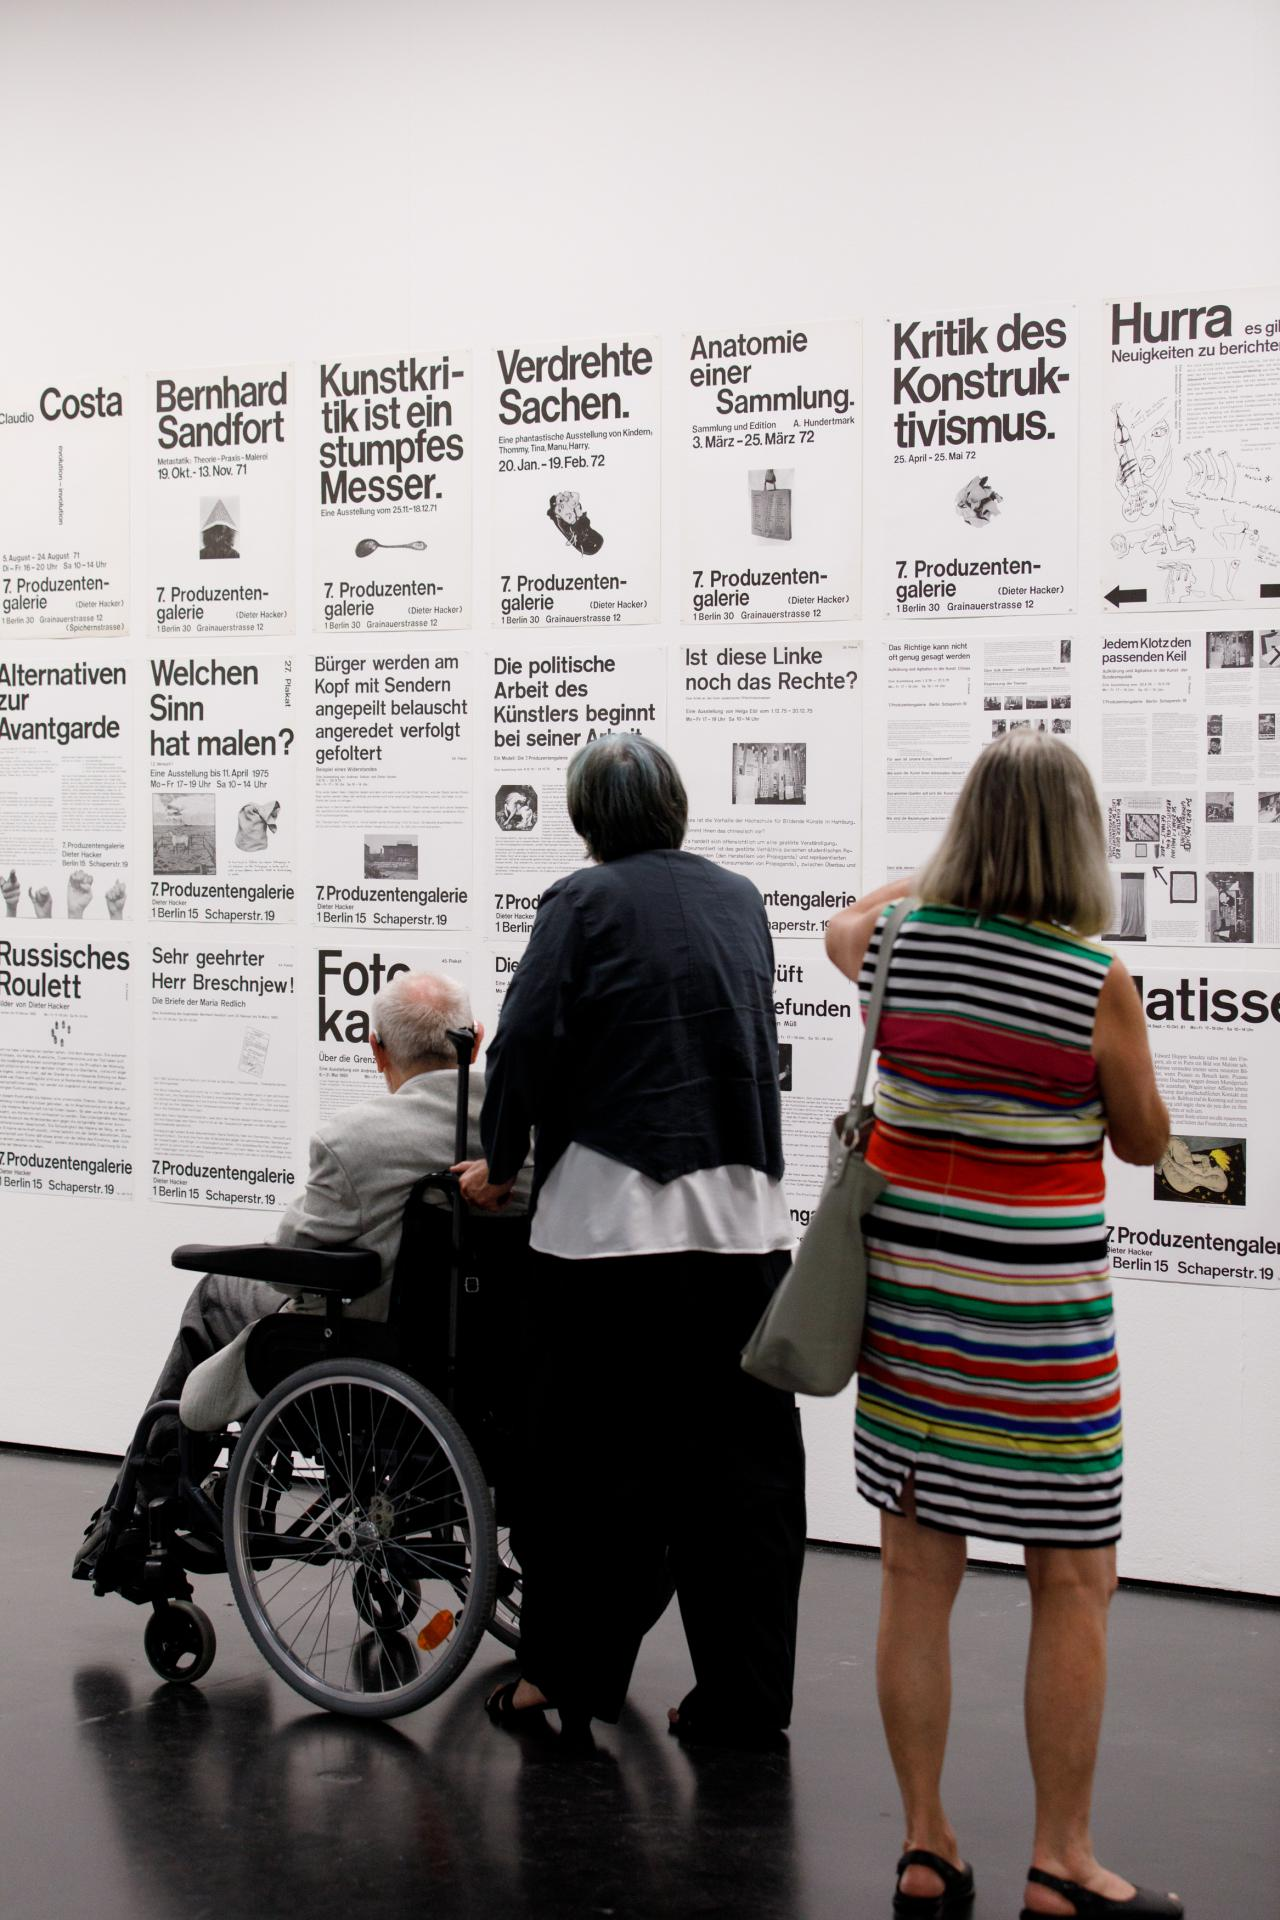 The picture shows three visitors in front of posters with typography